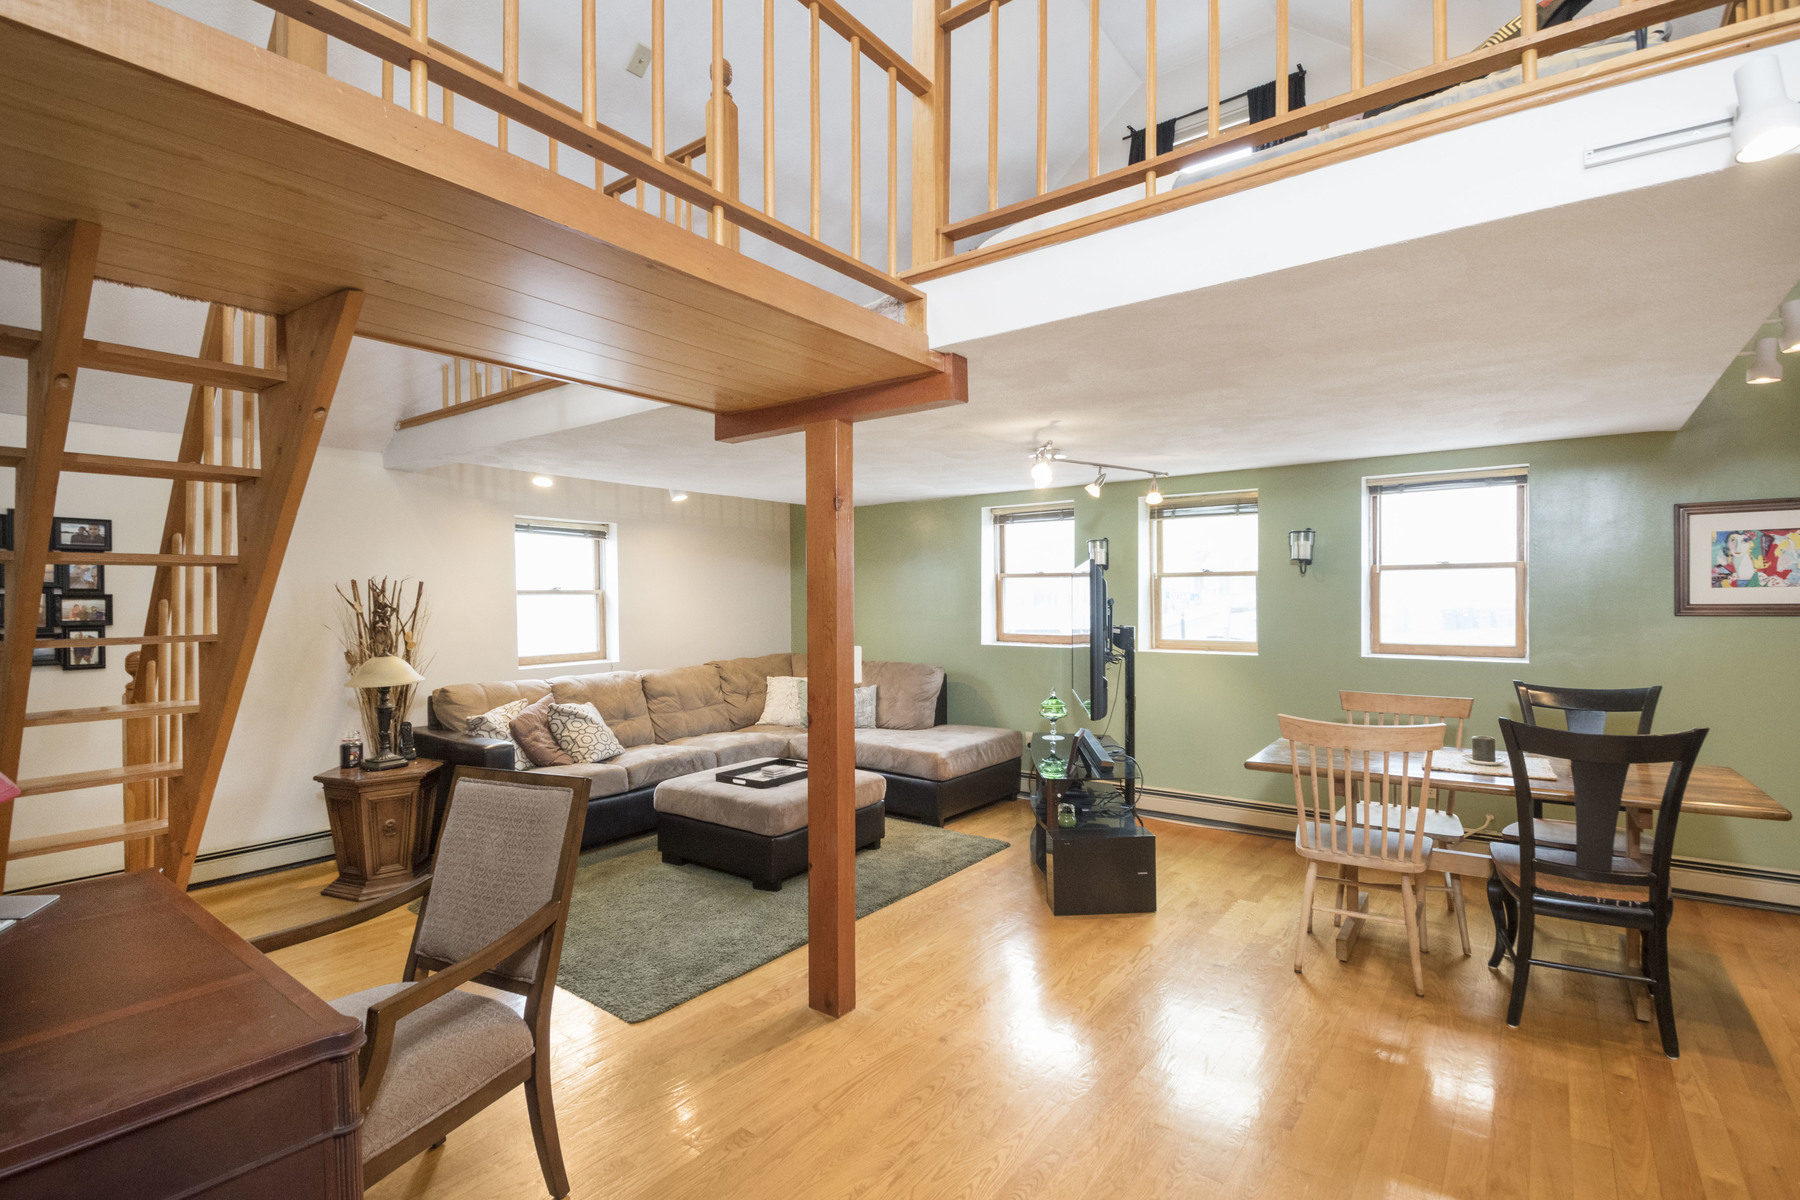 Condominium for Sale at Stunning Two Bedroom One Bath Loft With Garage Parking 177 Brooks Street - Unit C Boston, Massachusetts 02128 United States